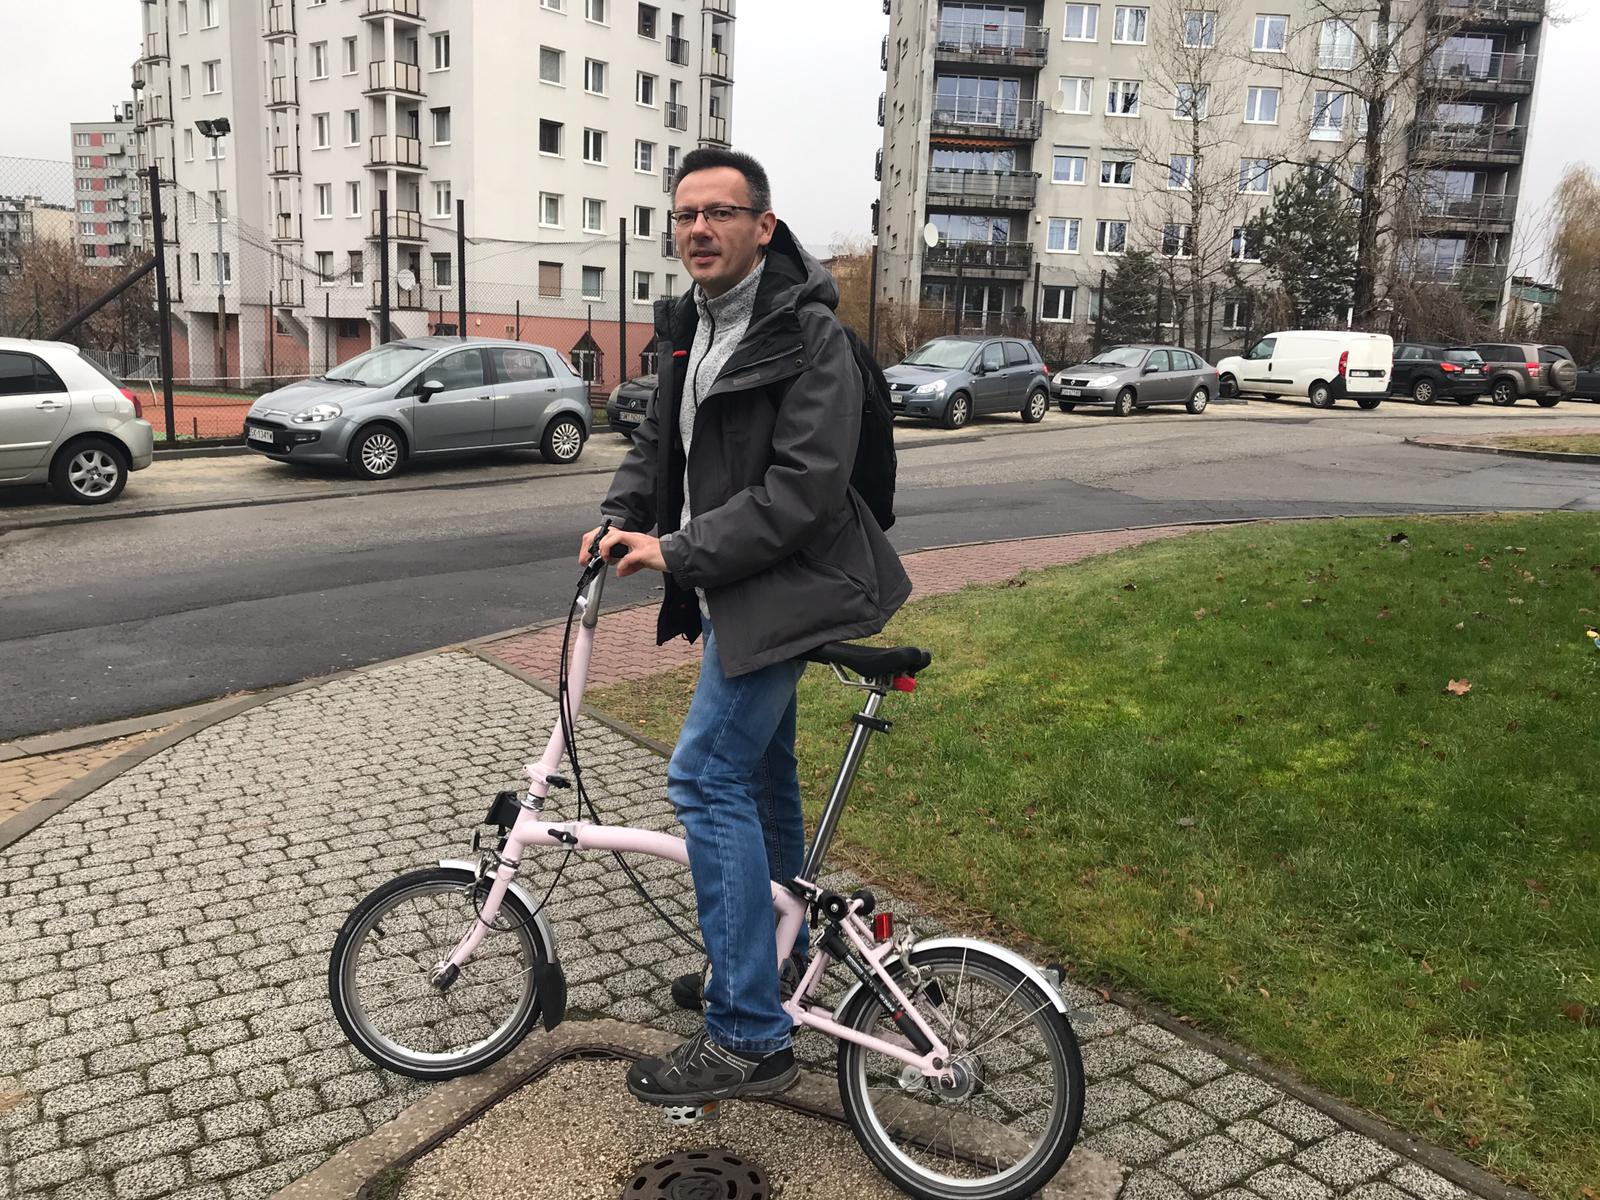 Grzegorz Mikrut, the new Bicycle Mayor of Katowice